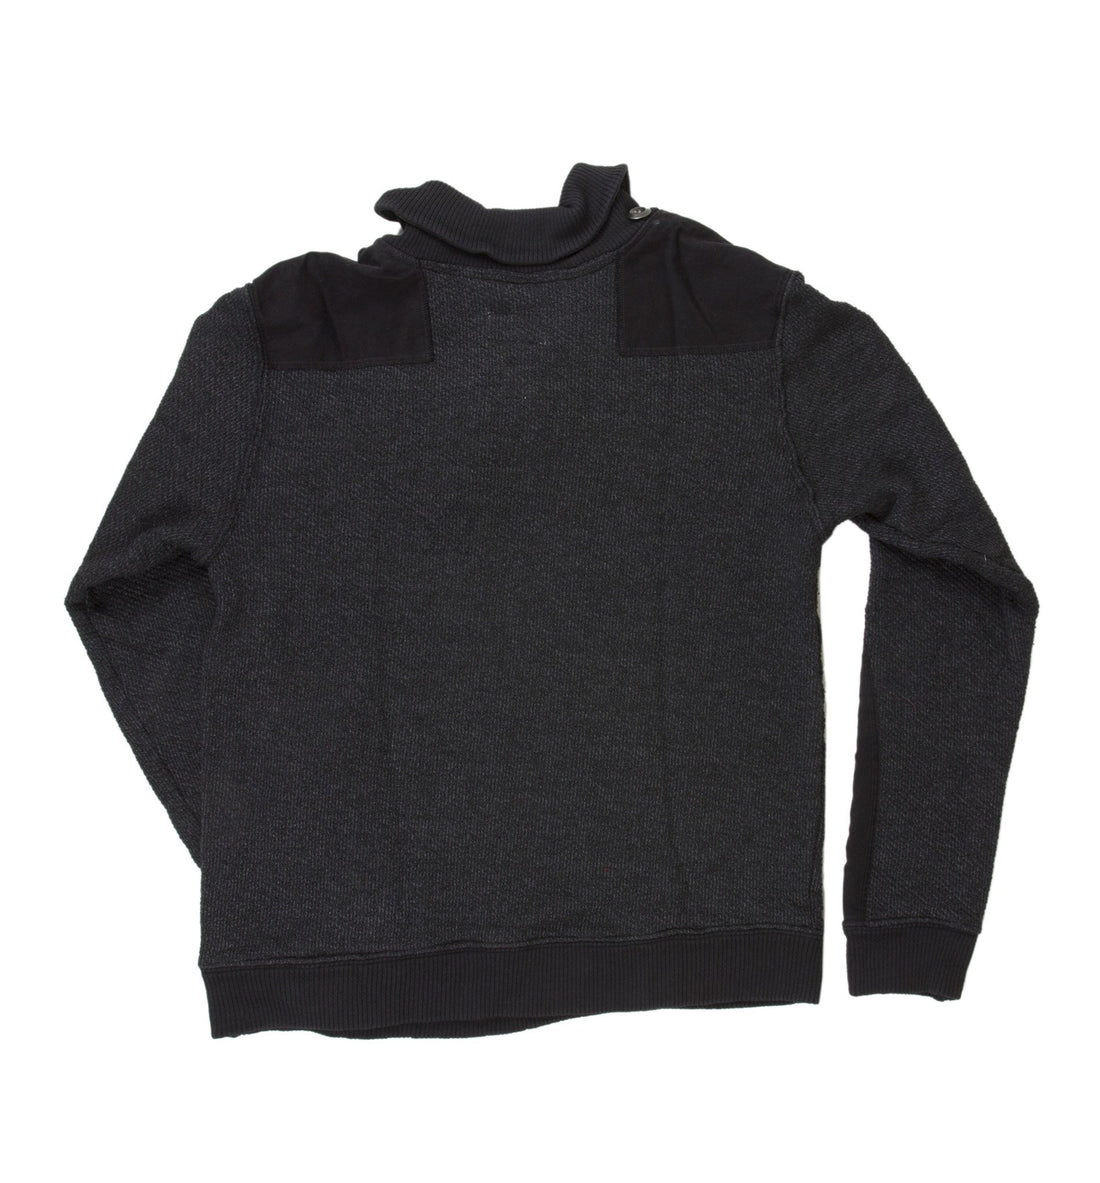 INR Commando Sweater